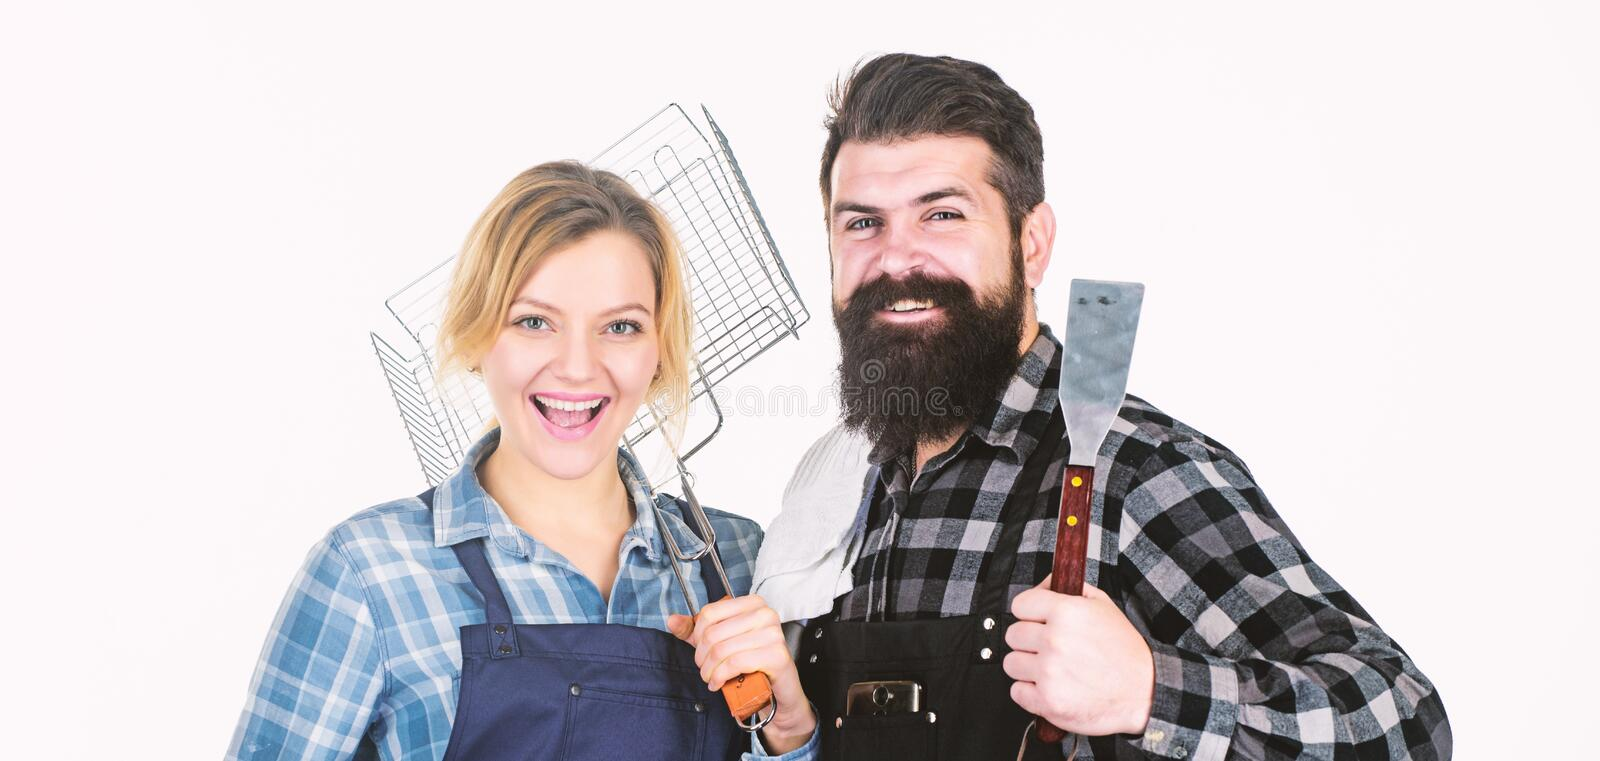 Family weekend. Couple in love hold kitchen utensils. Man bearded hipster and girl. Preparation. Tools for roasting meat royalty free stock photography